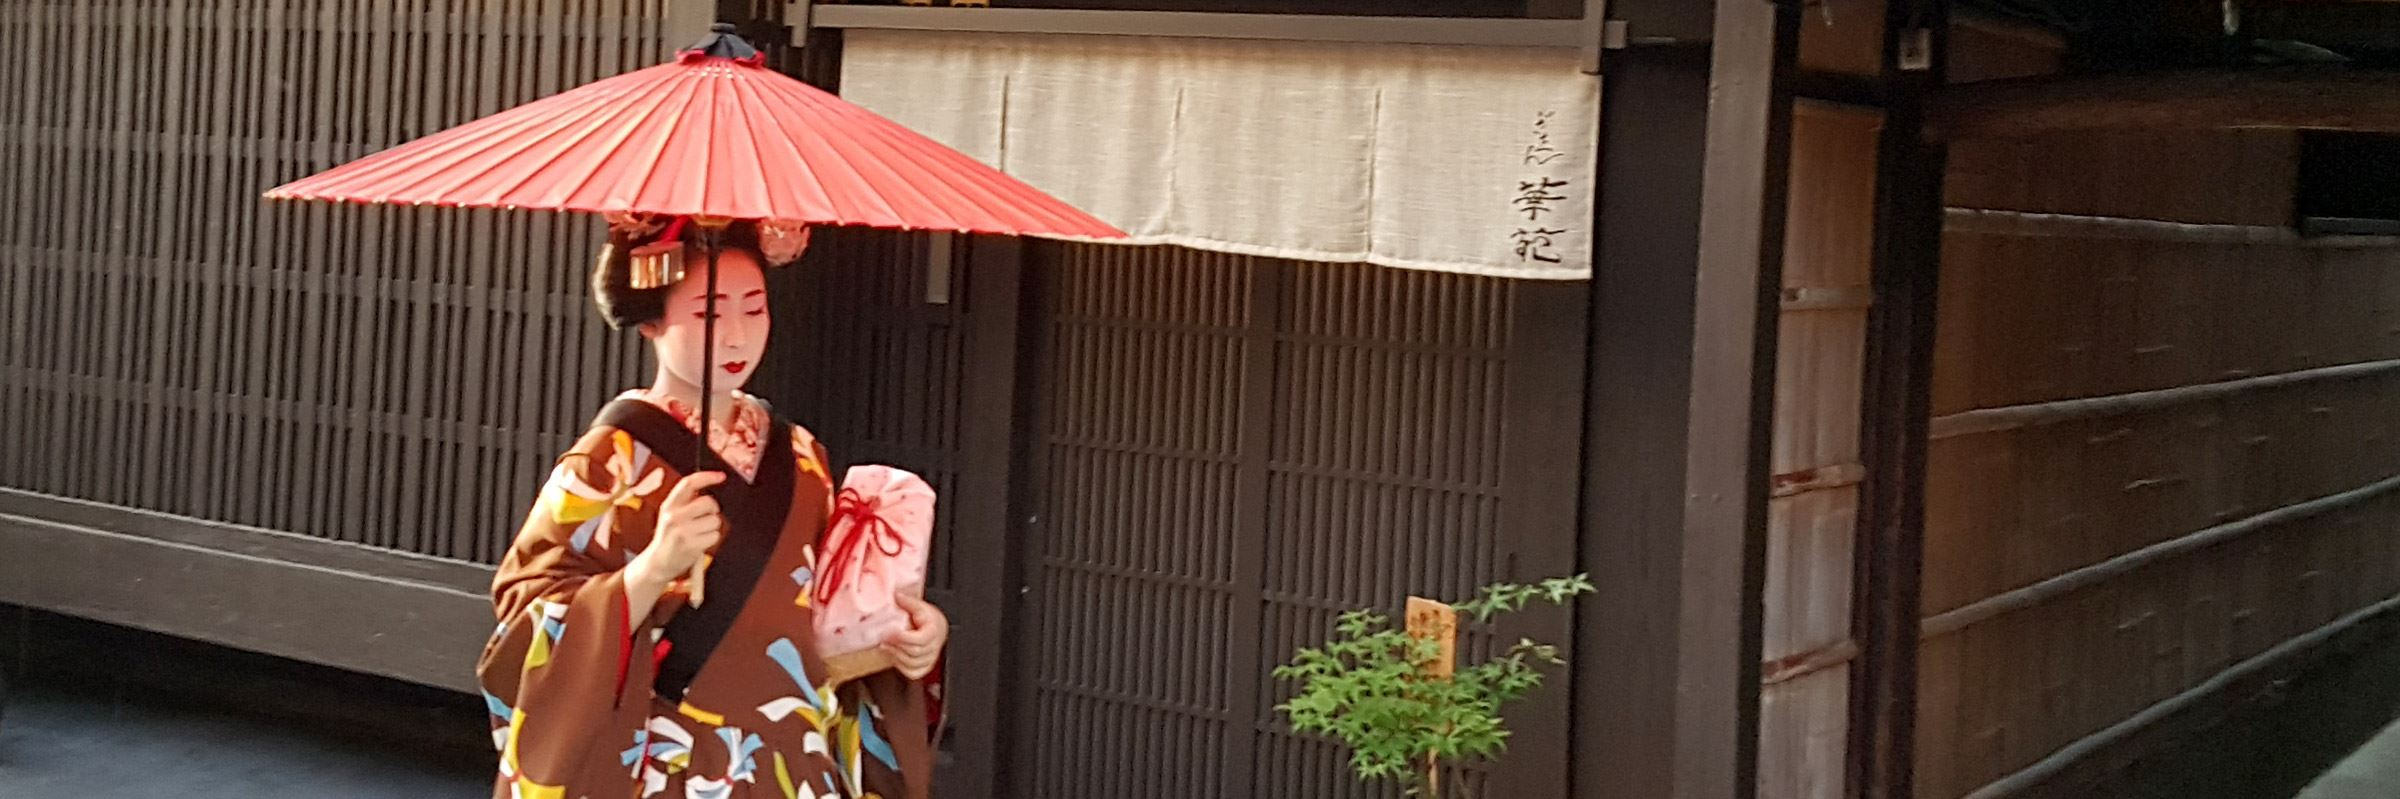 Geisha in the Gion district, Kyoto